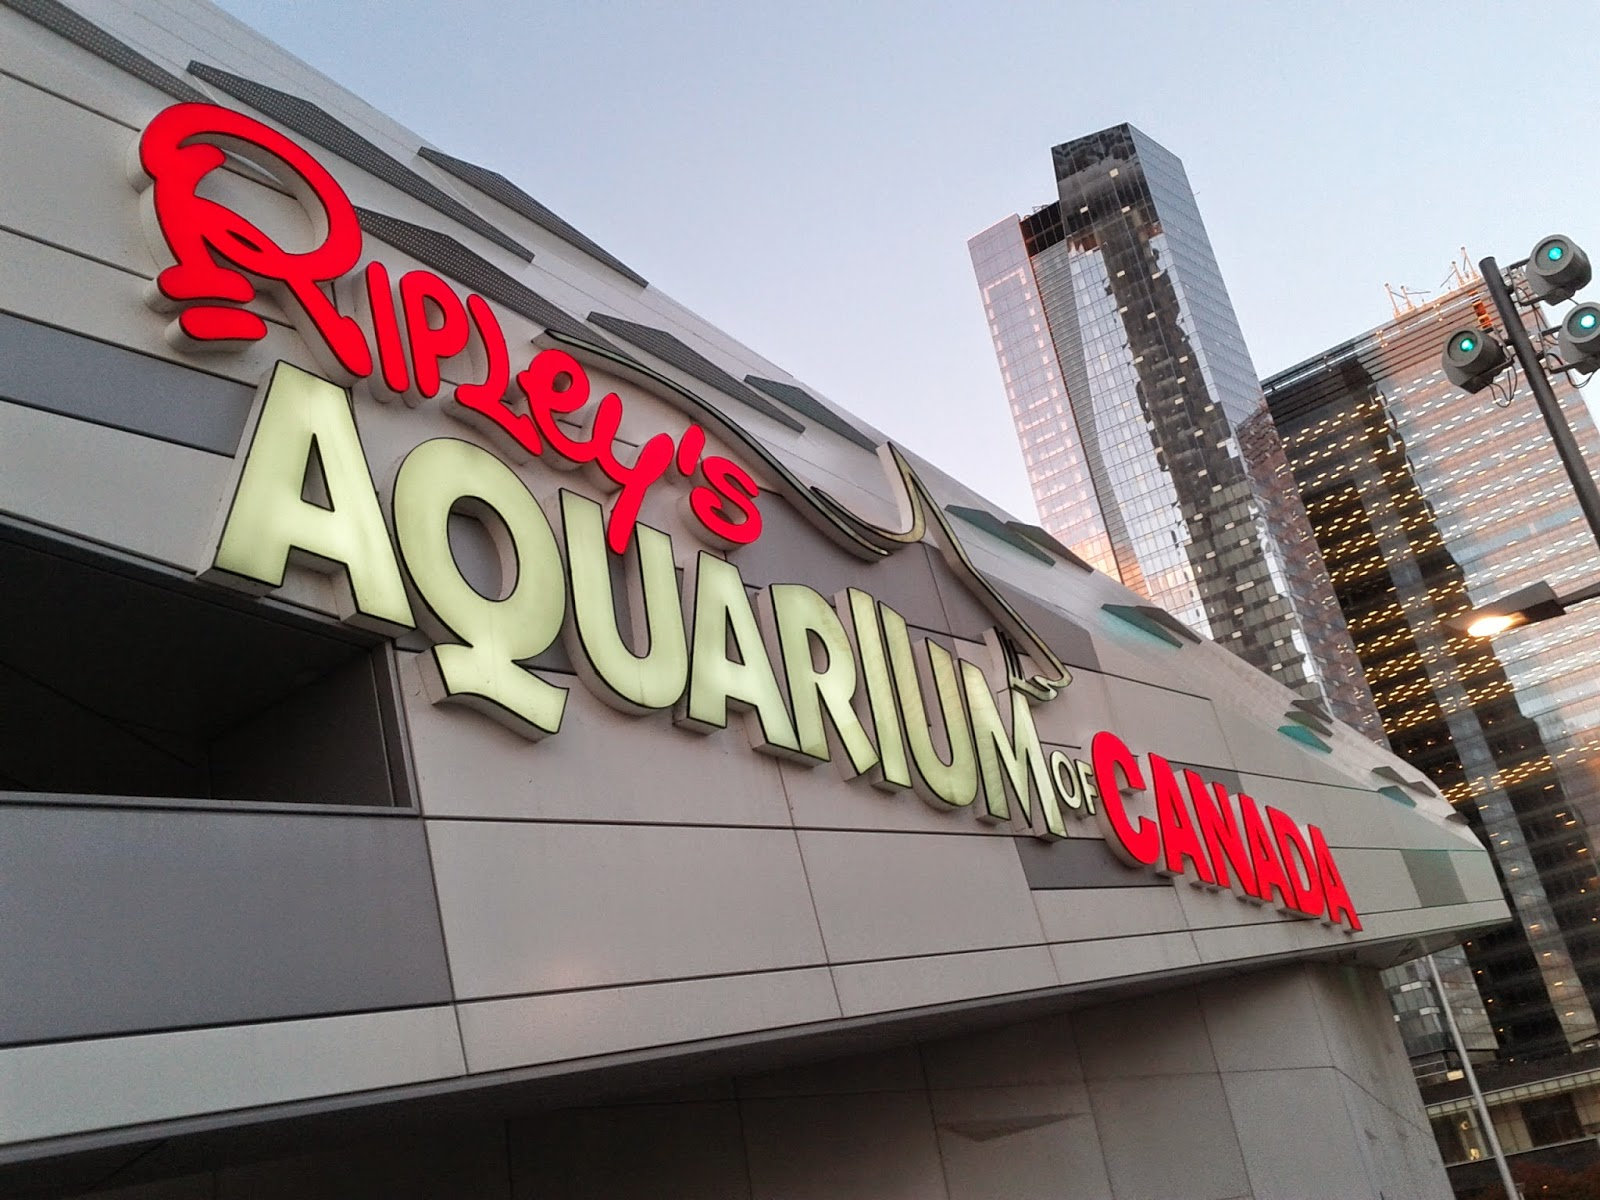 Ripley's Aquarium of Canada Sign